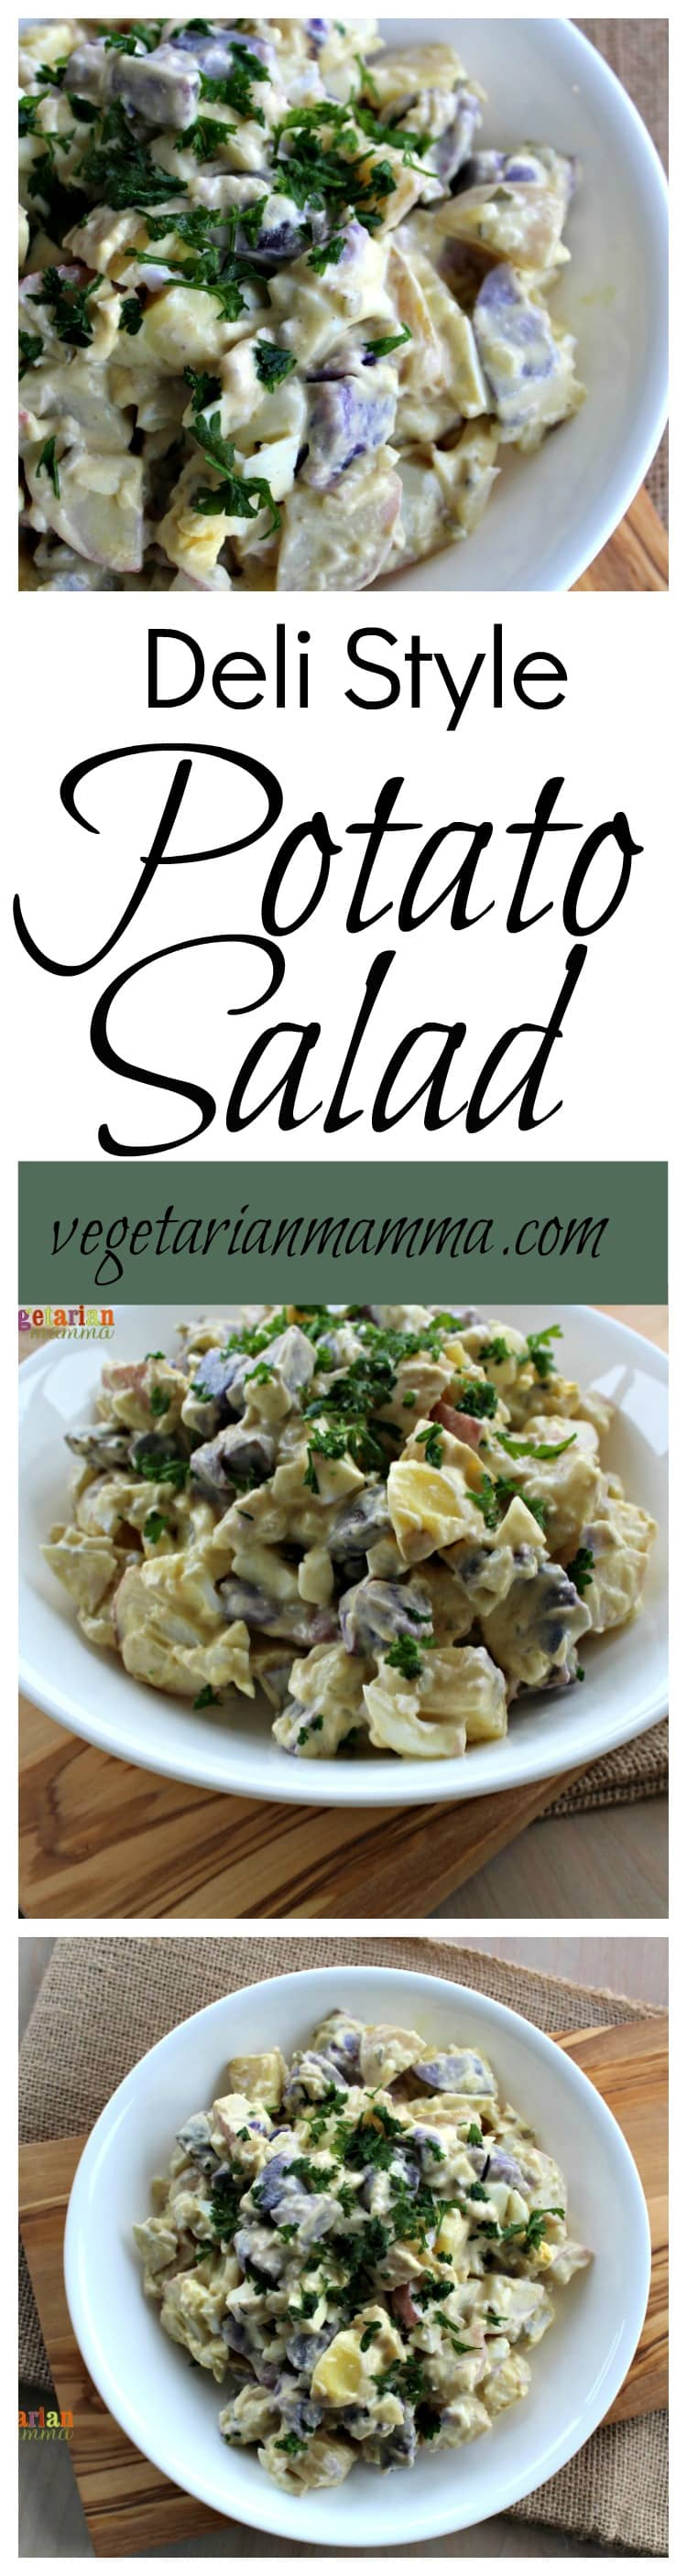 Take your picnic up a notch with this Deli Style Potato Salad